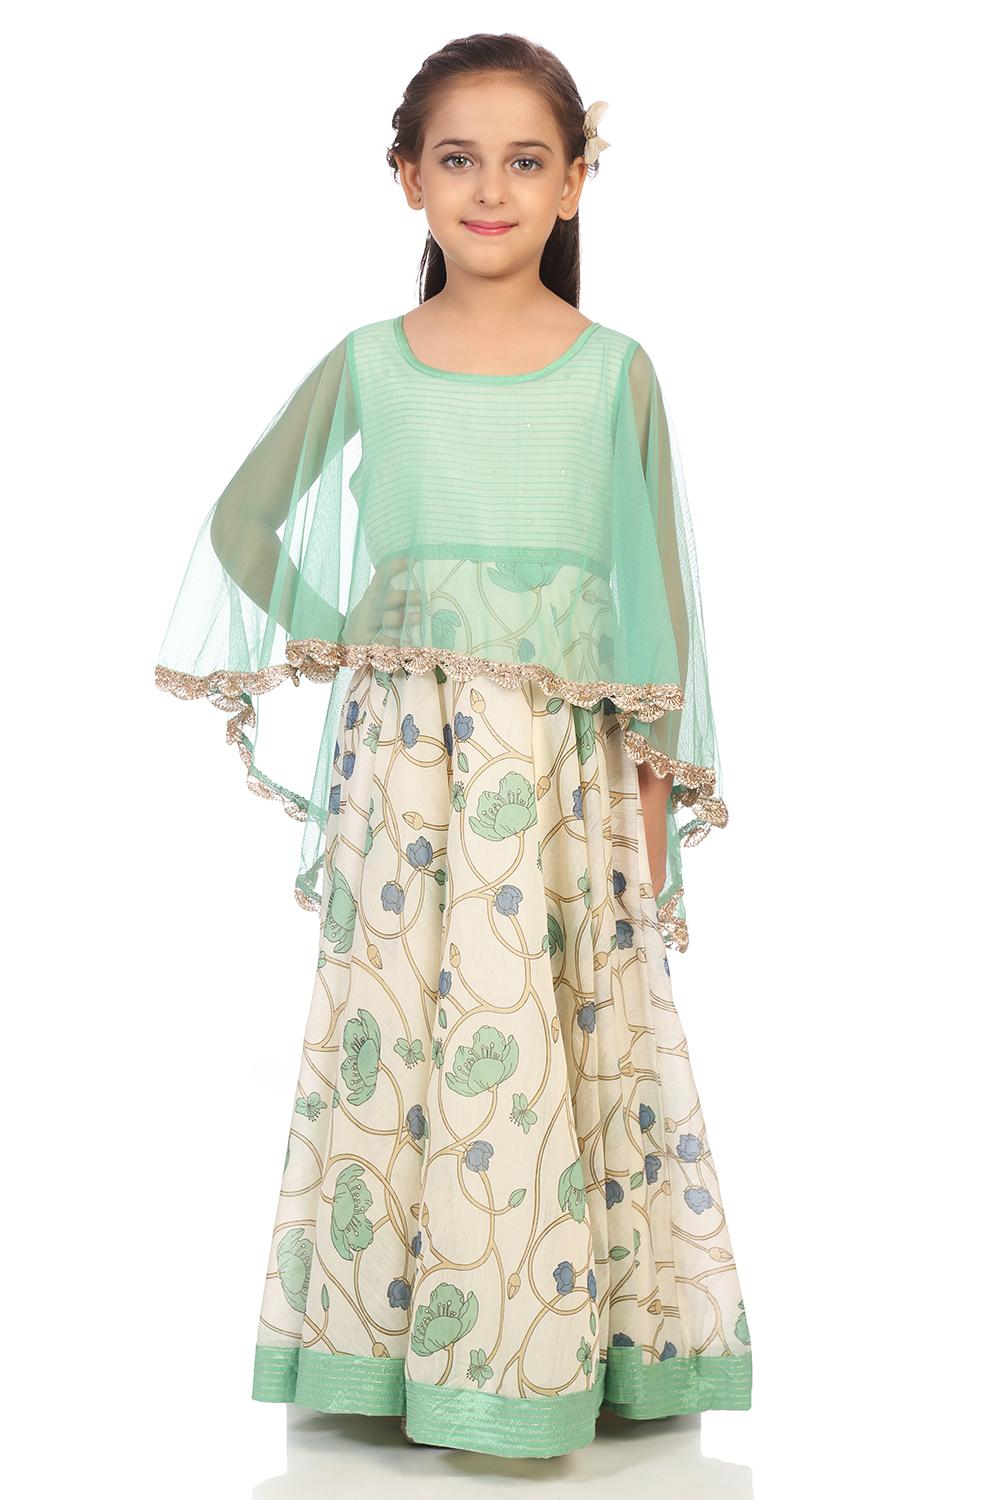 Off White Poly Cotton Anarkali Dress - KW2962AW18O